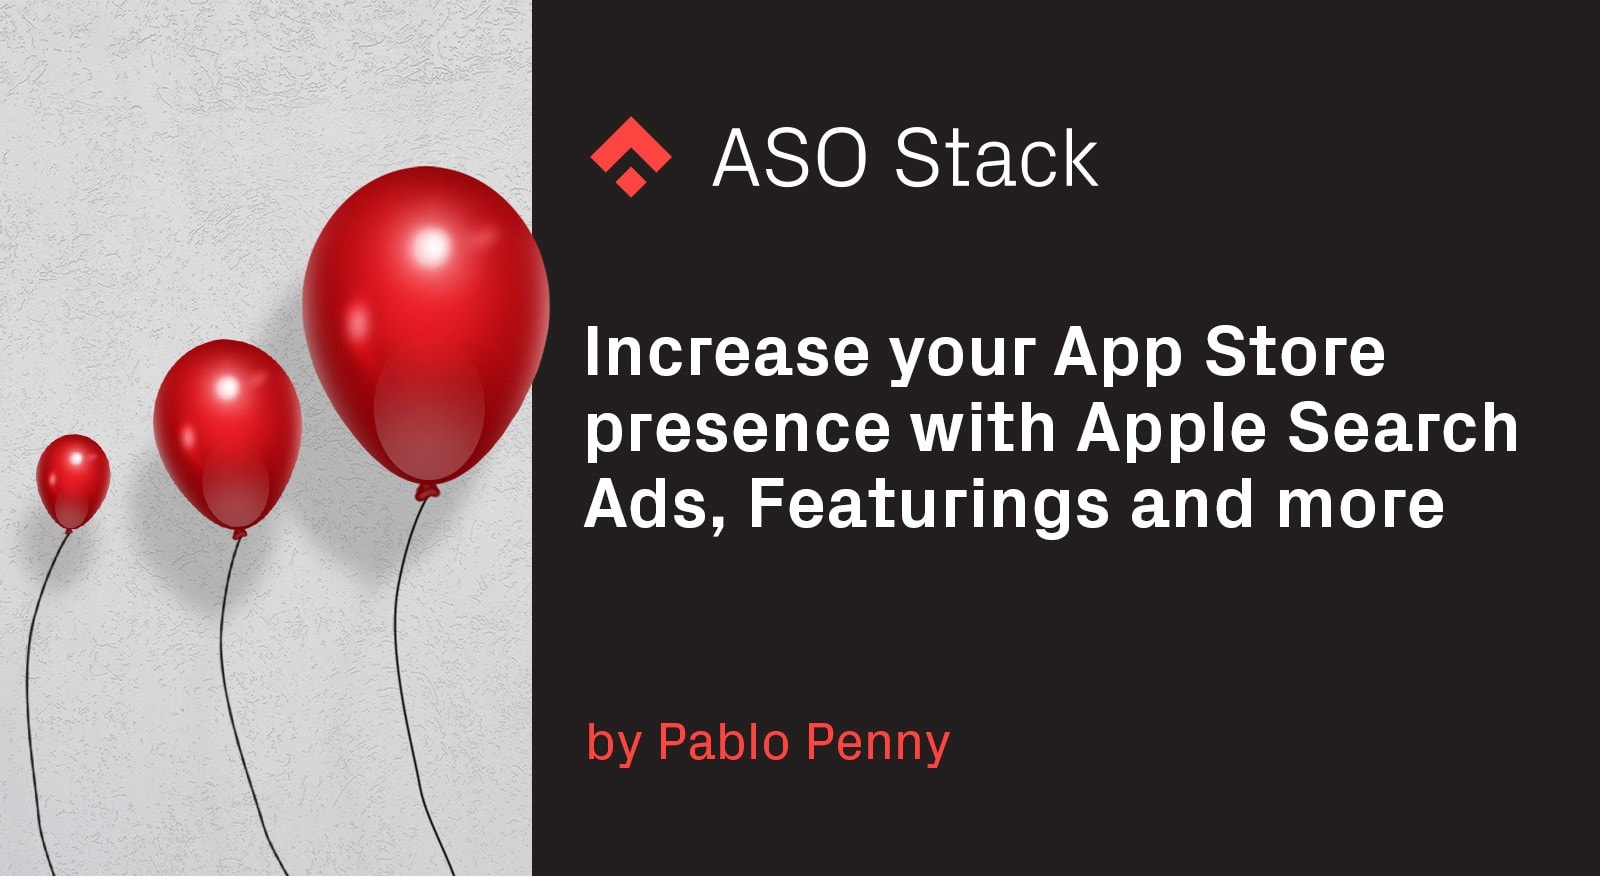 Increase your App Store Search Presence with IAPs, Apple Search Ads, Featurings and more